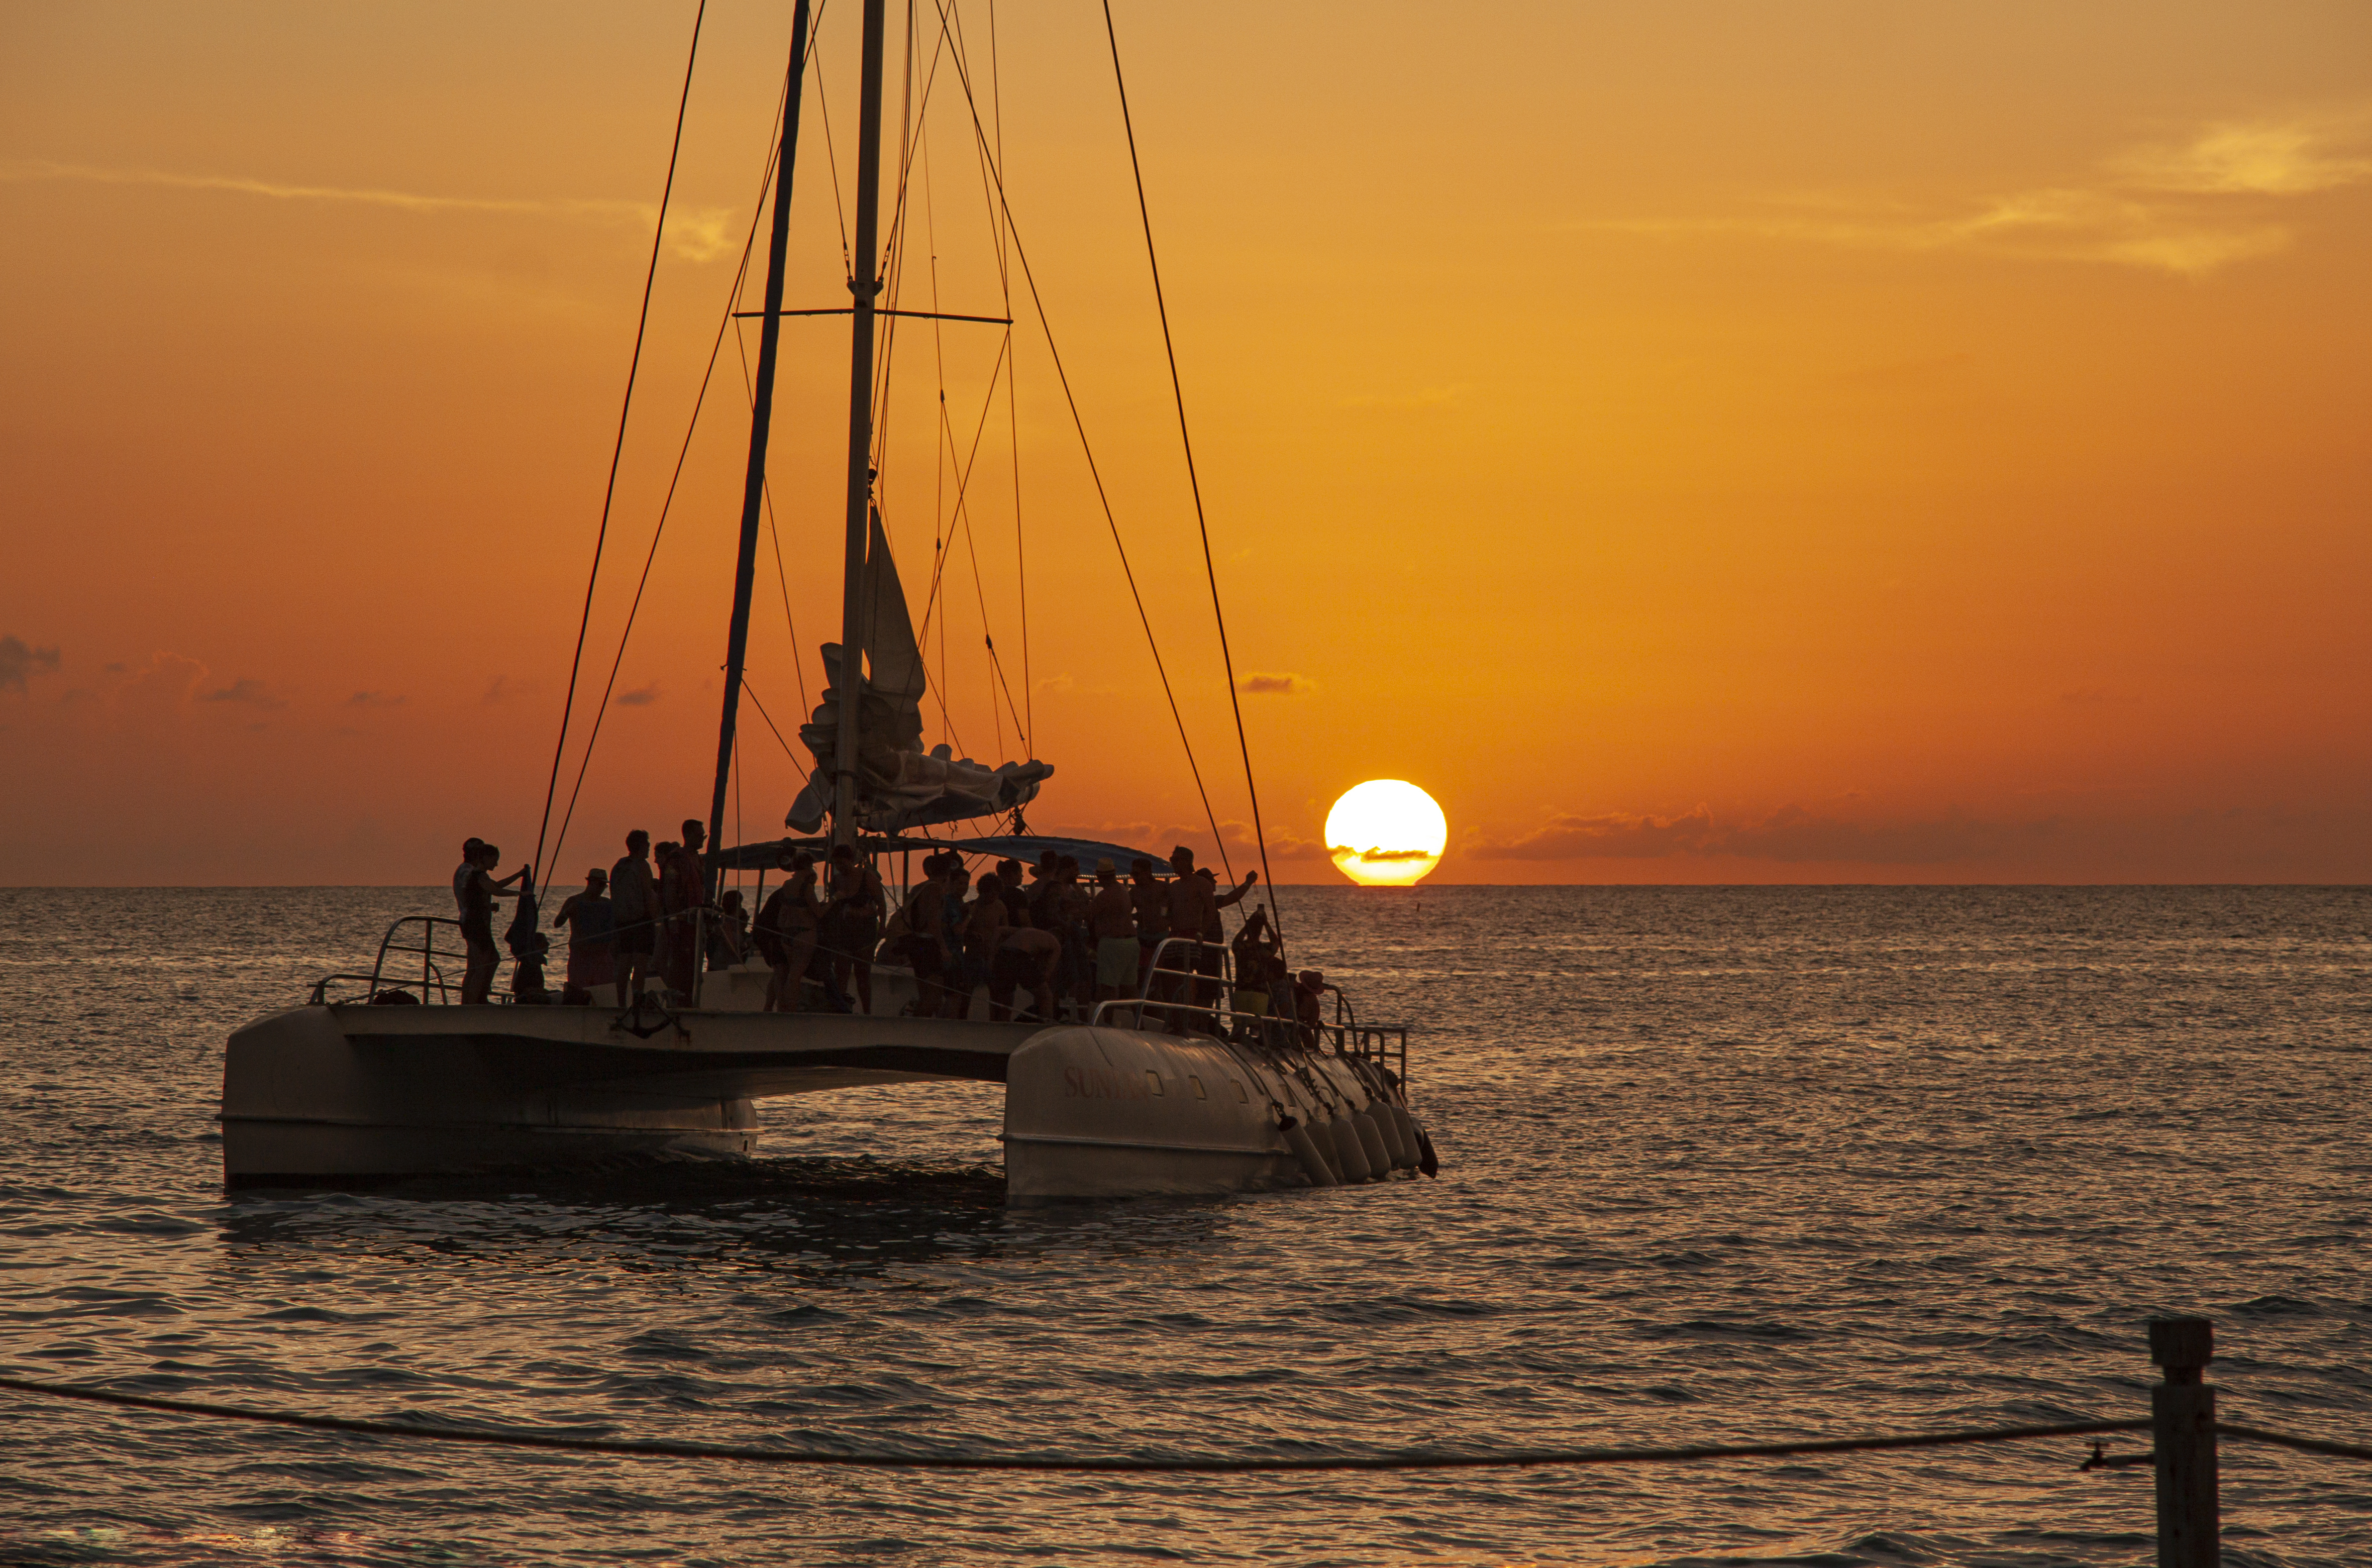 Hawaii Sunset Sail